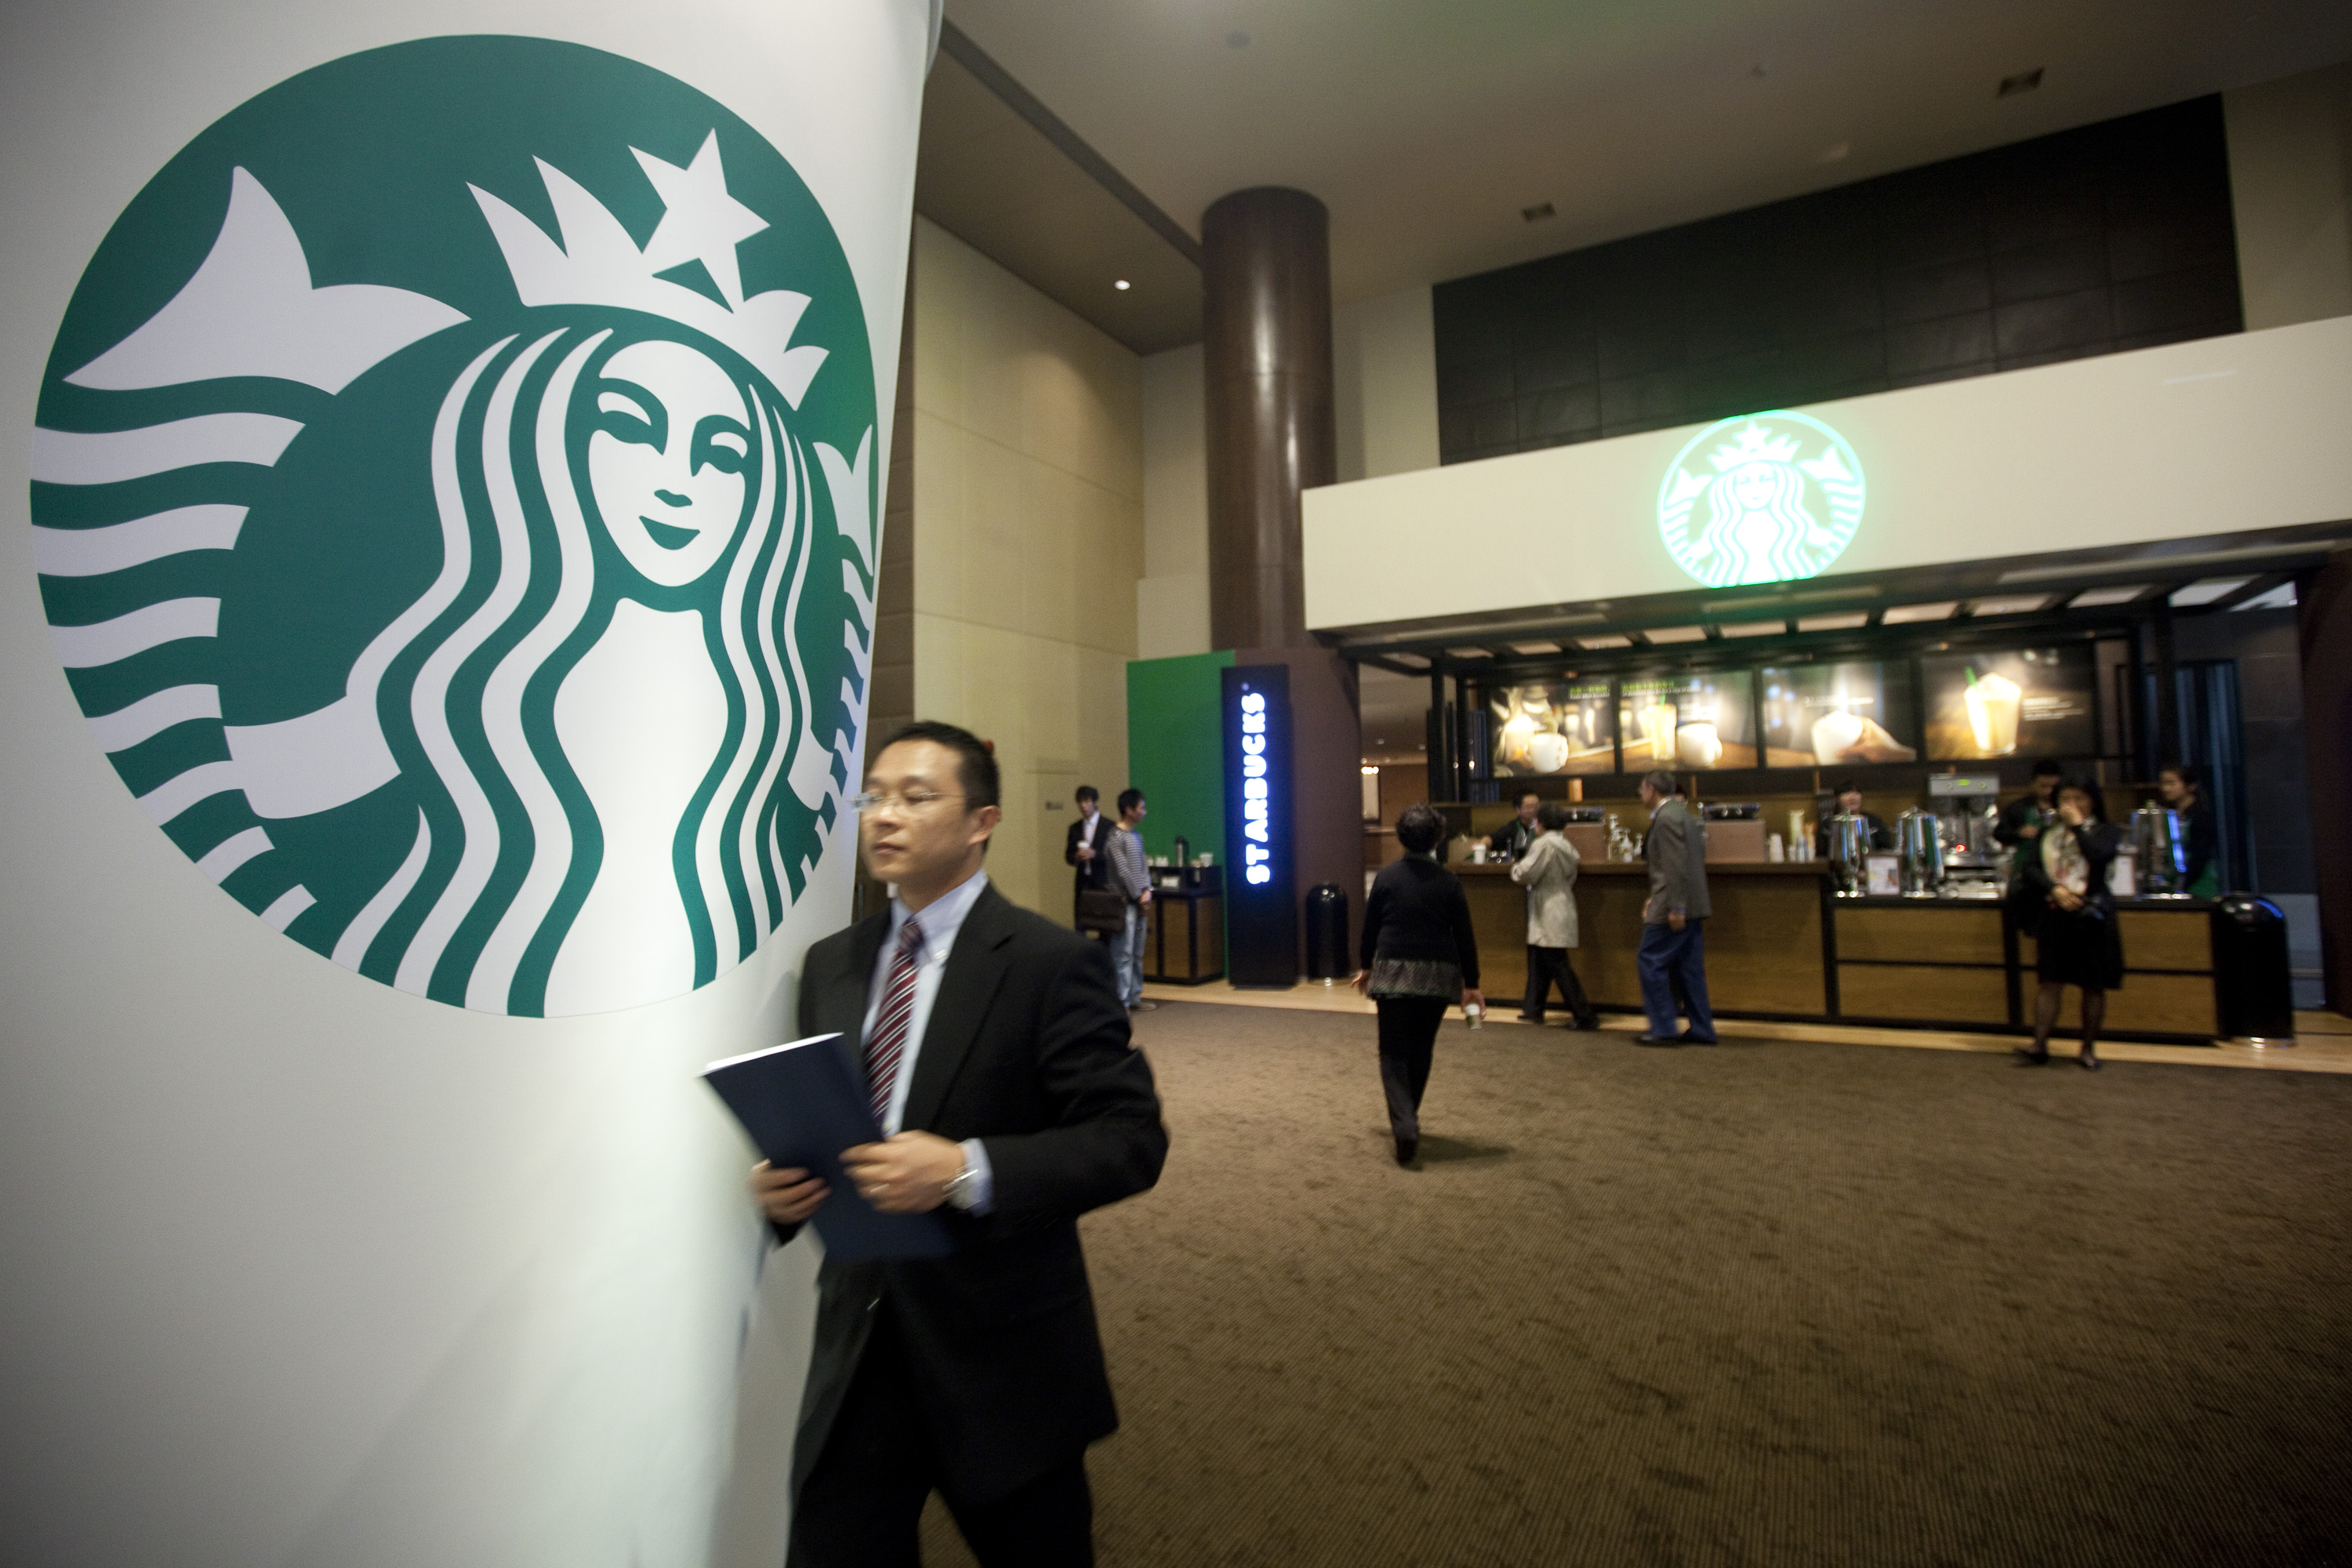 A Starbucks outlet in China. The company has been investing heavily in the market by opening new stores and expanding delivery to cater to increased demand for on-the-go coffee. Photo: Bloomberg